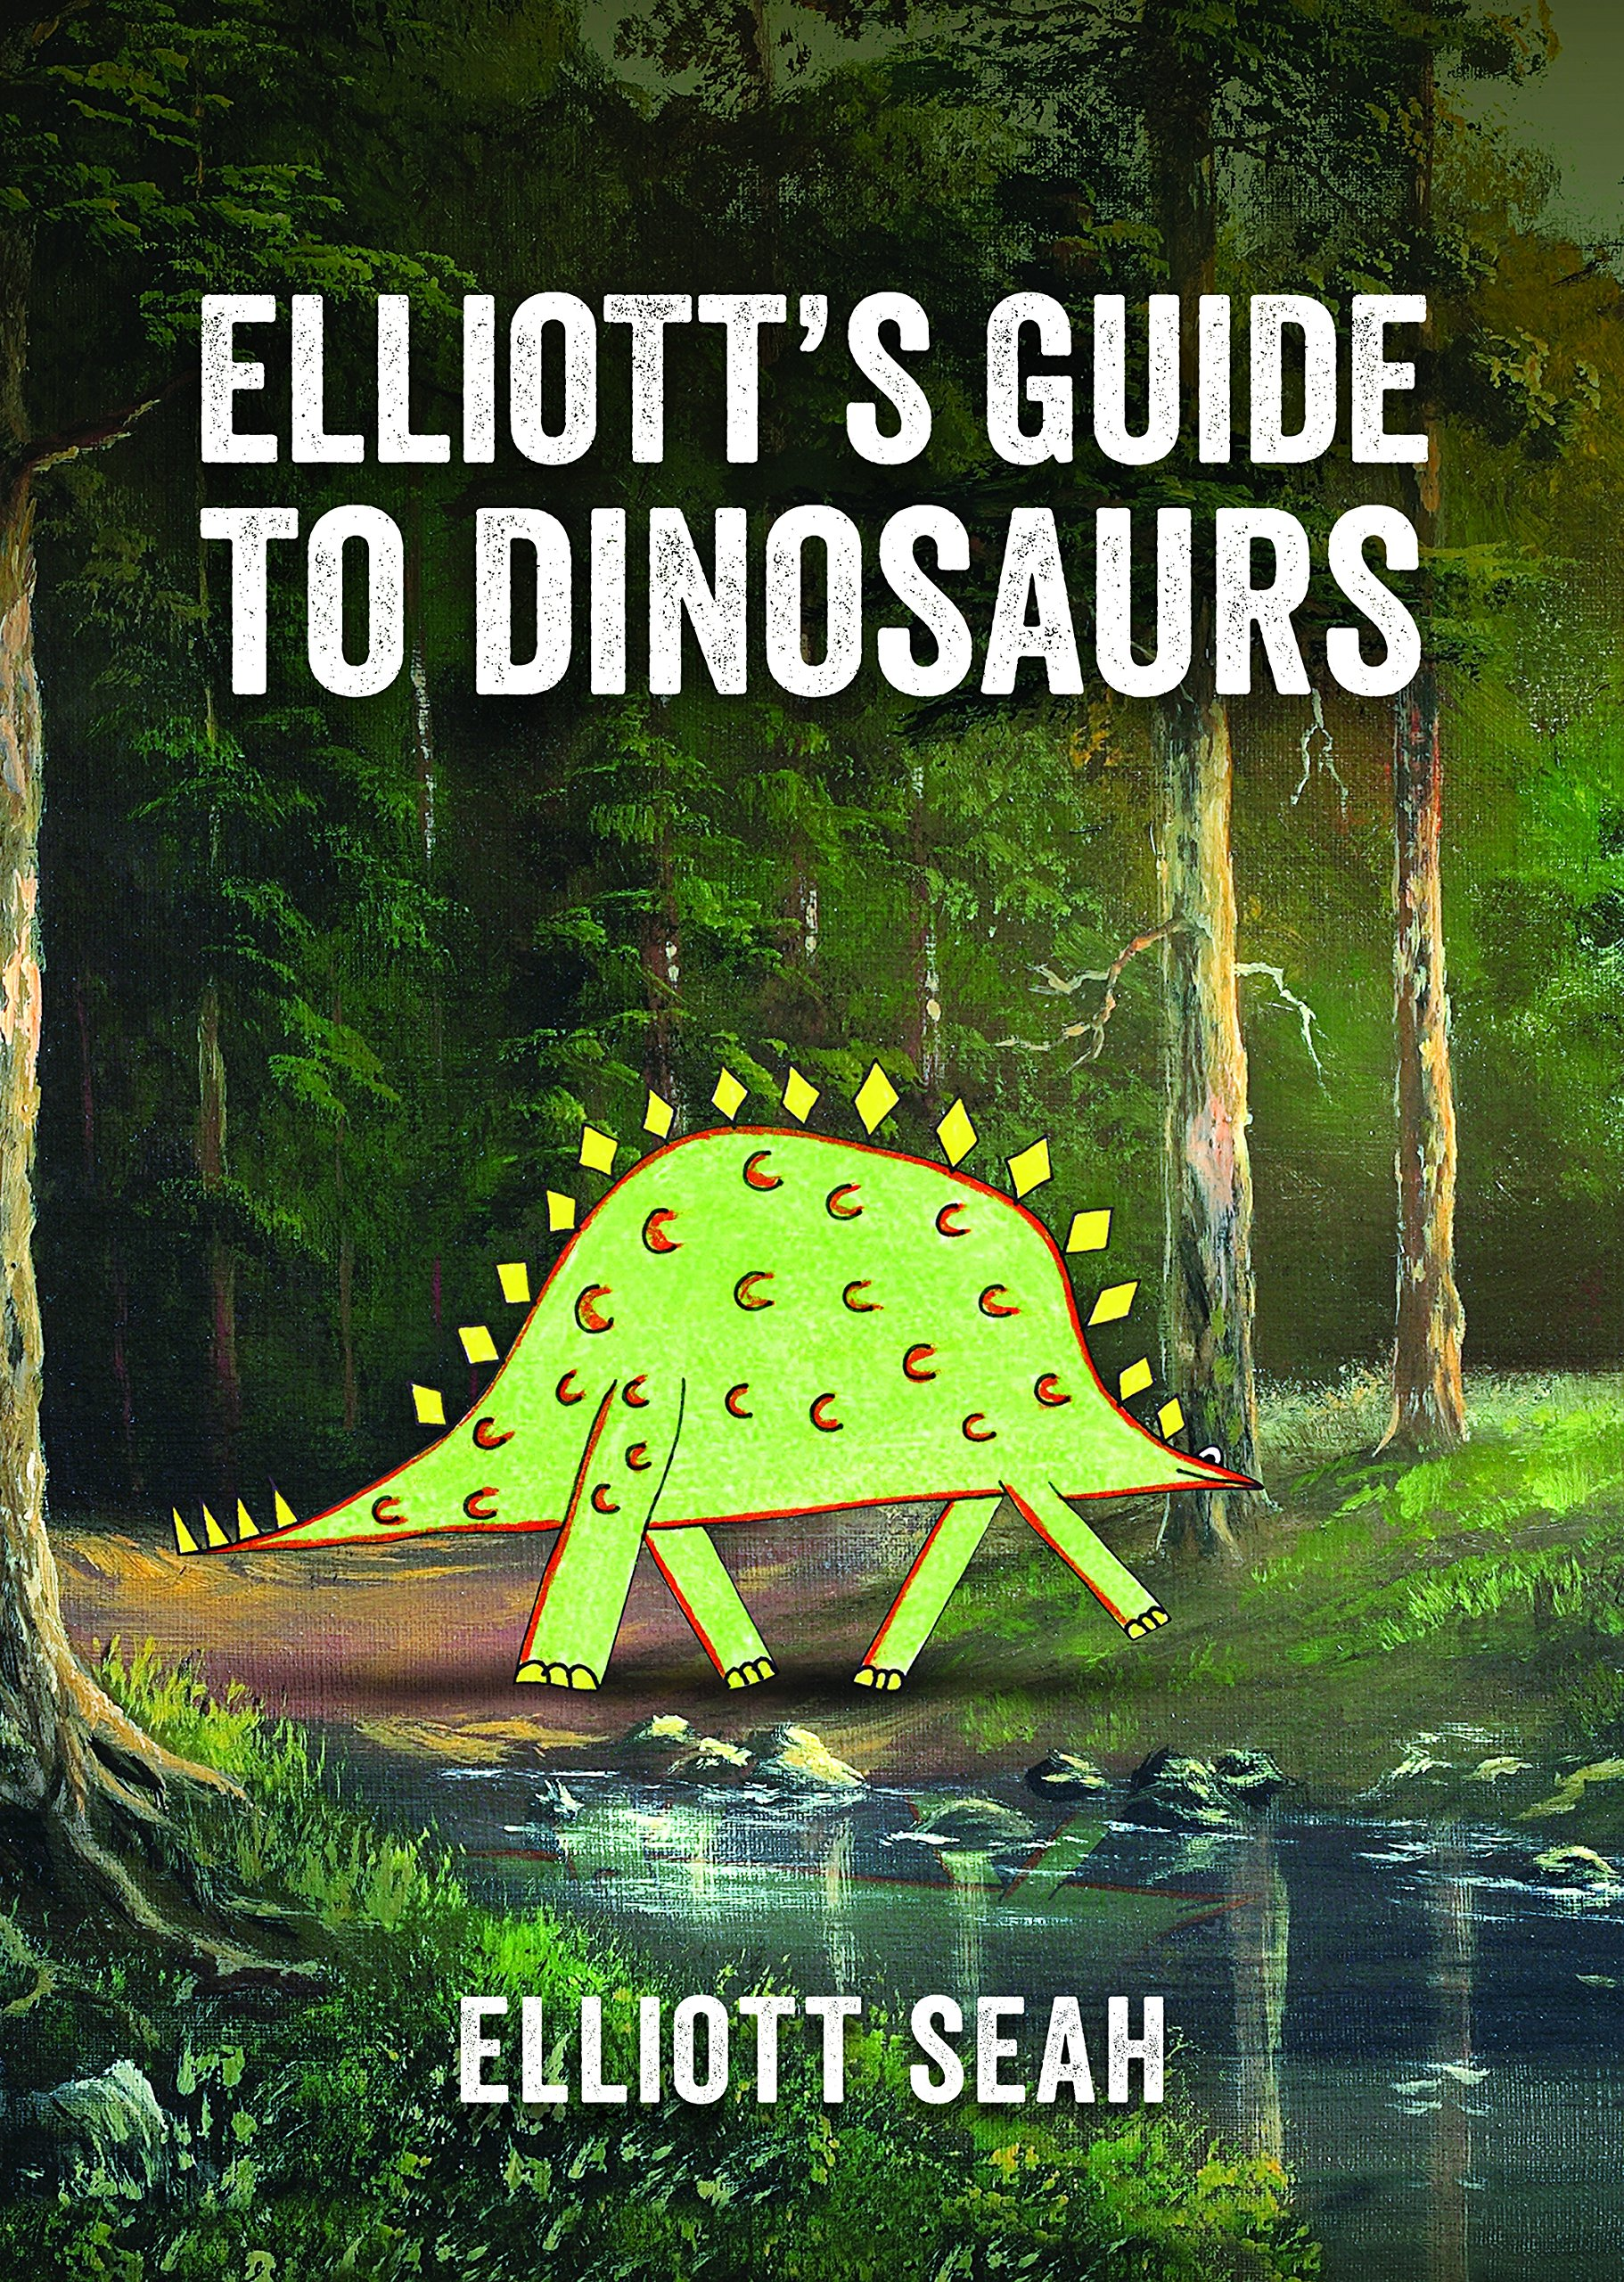 Elliott's Guide to Dinosaurs